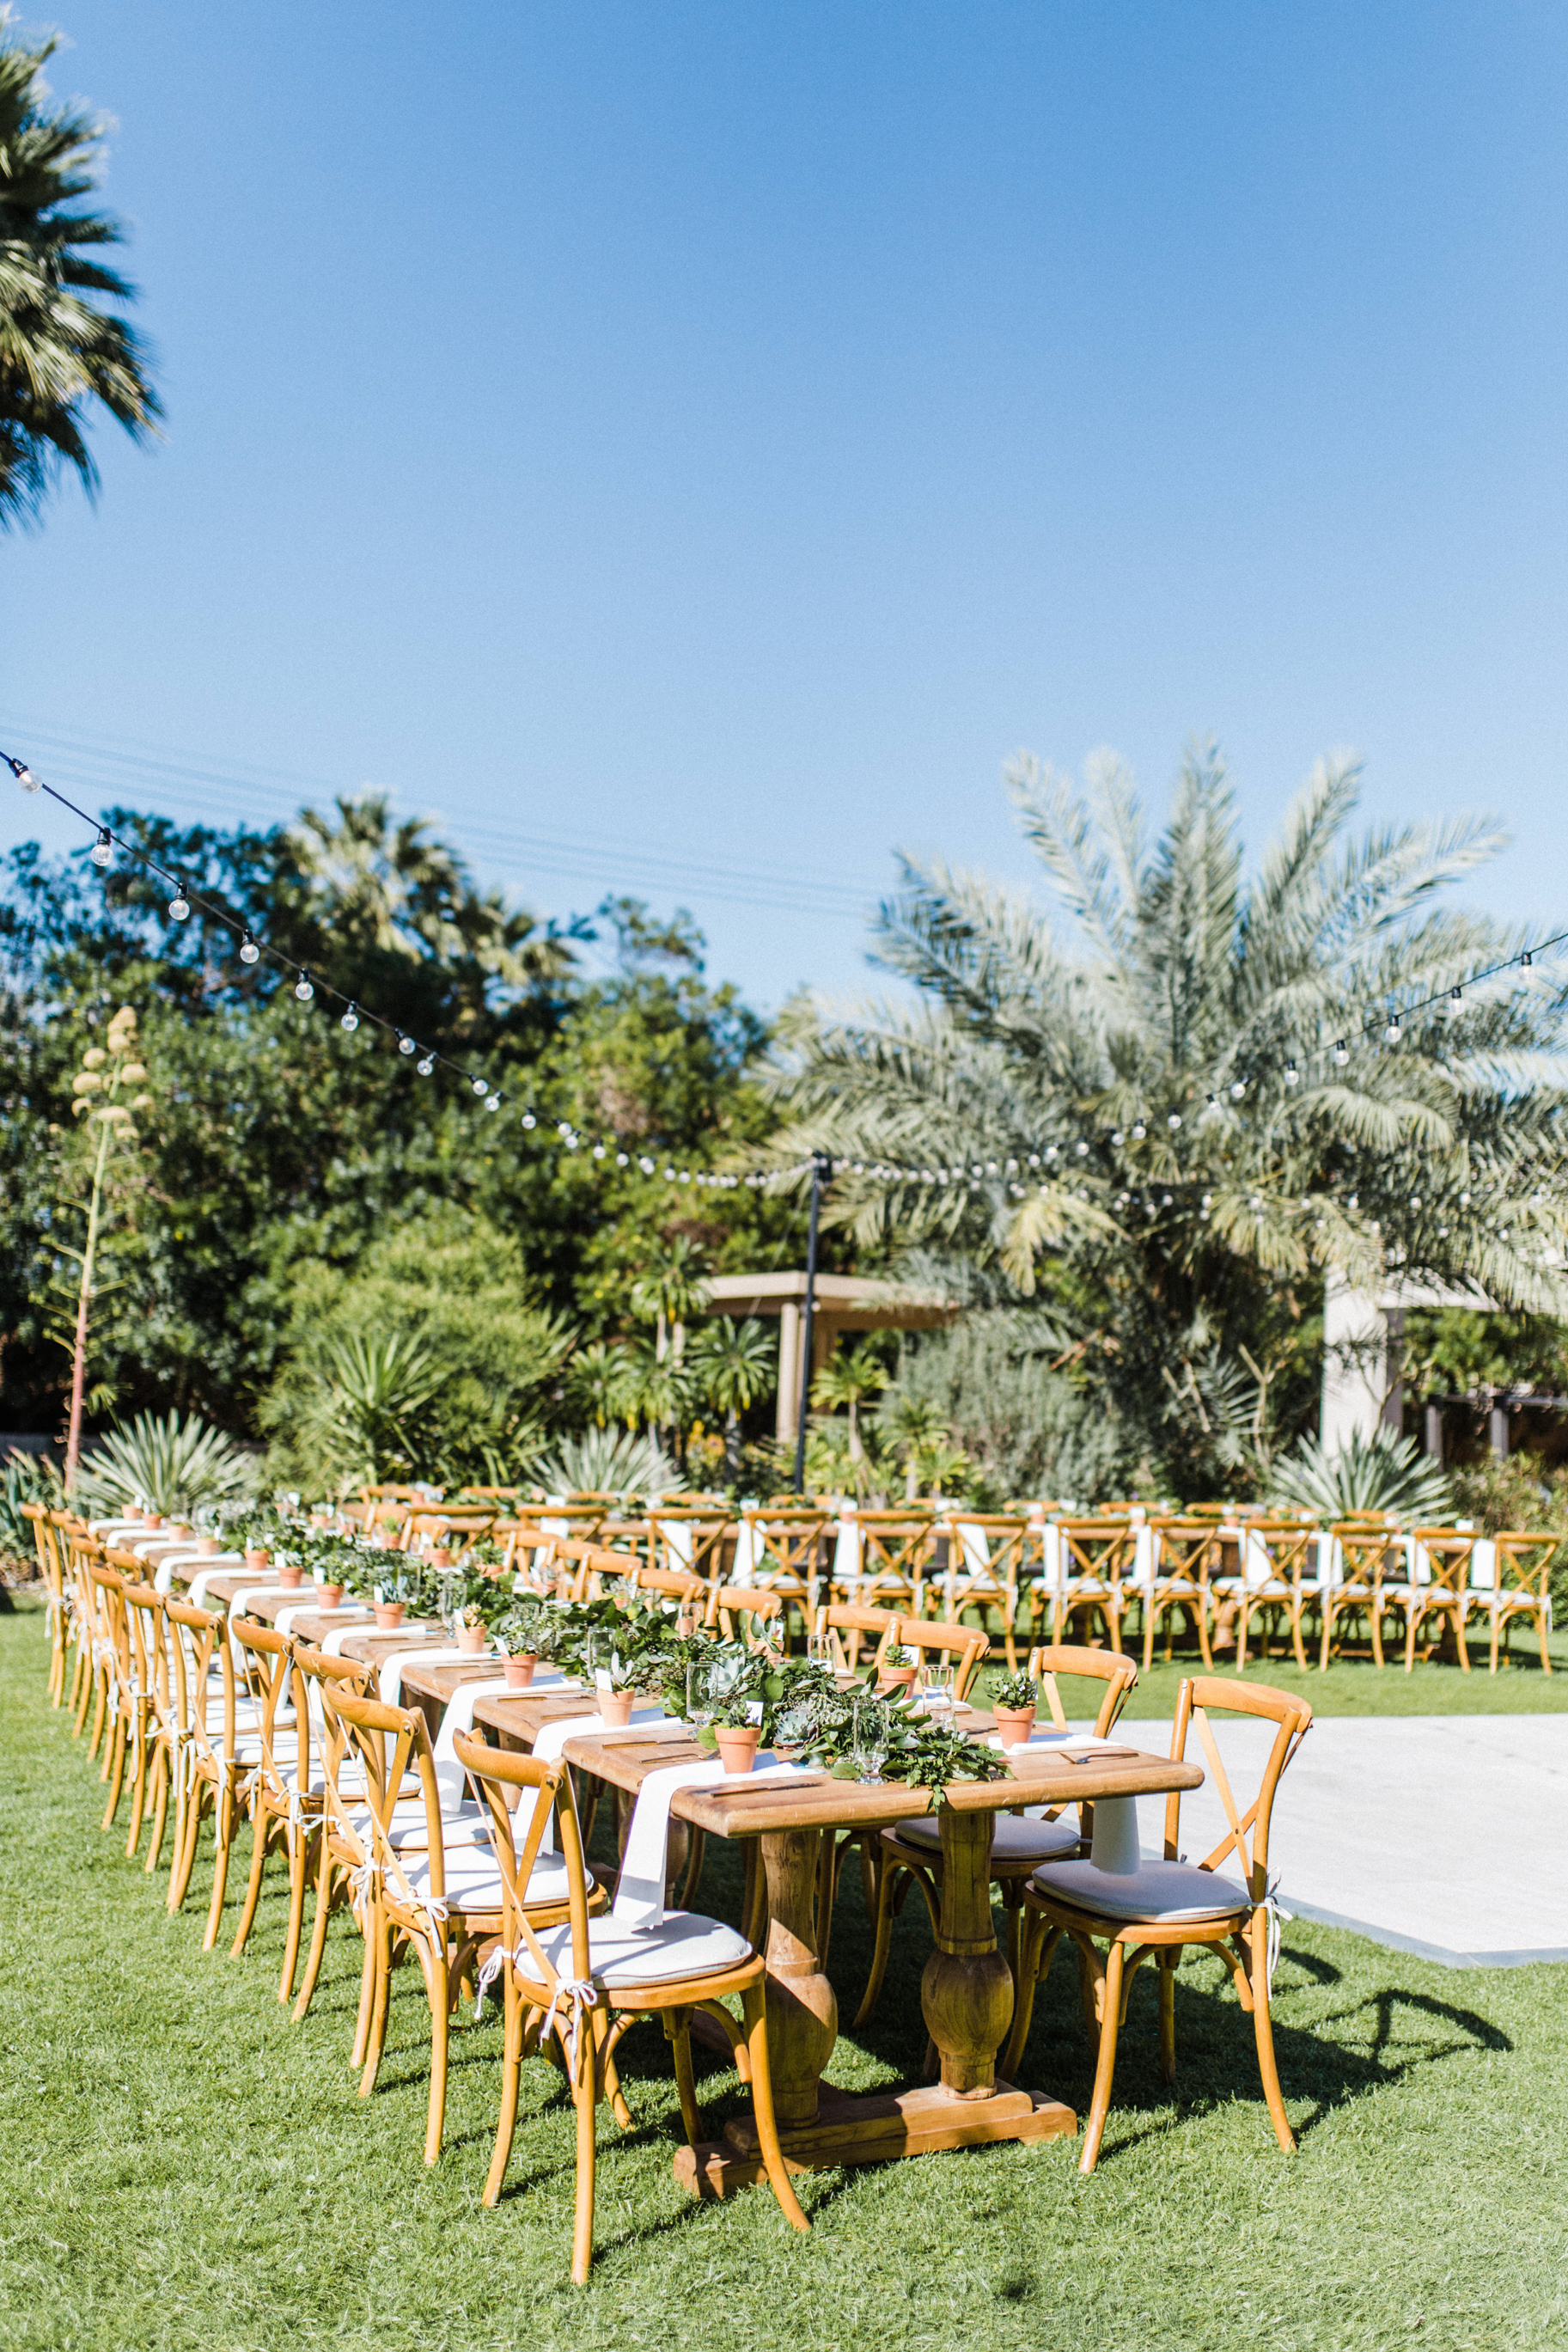 Outdoor Estate Tables at Wedding